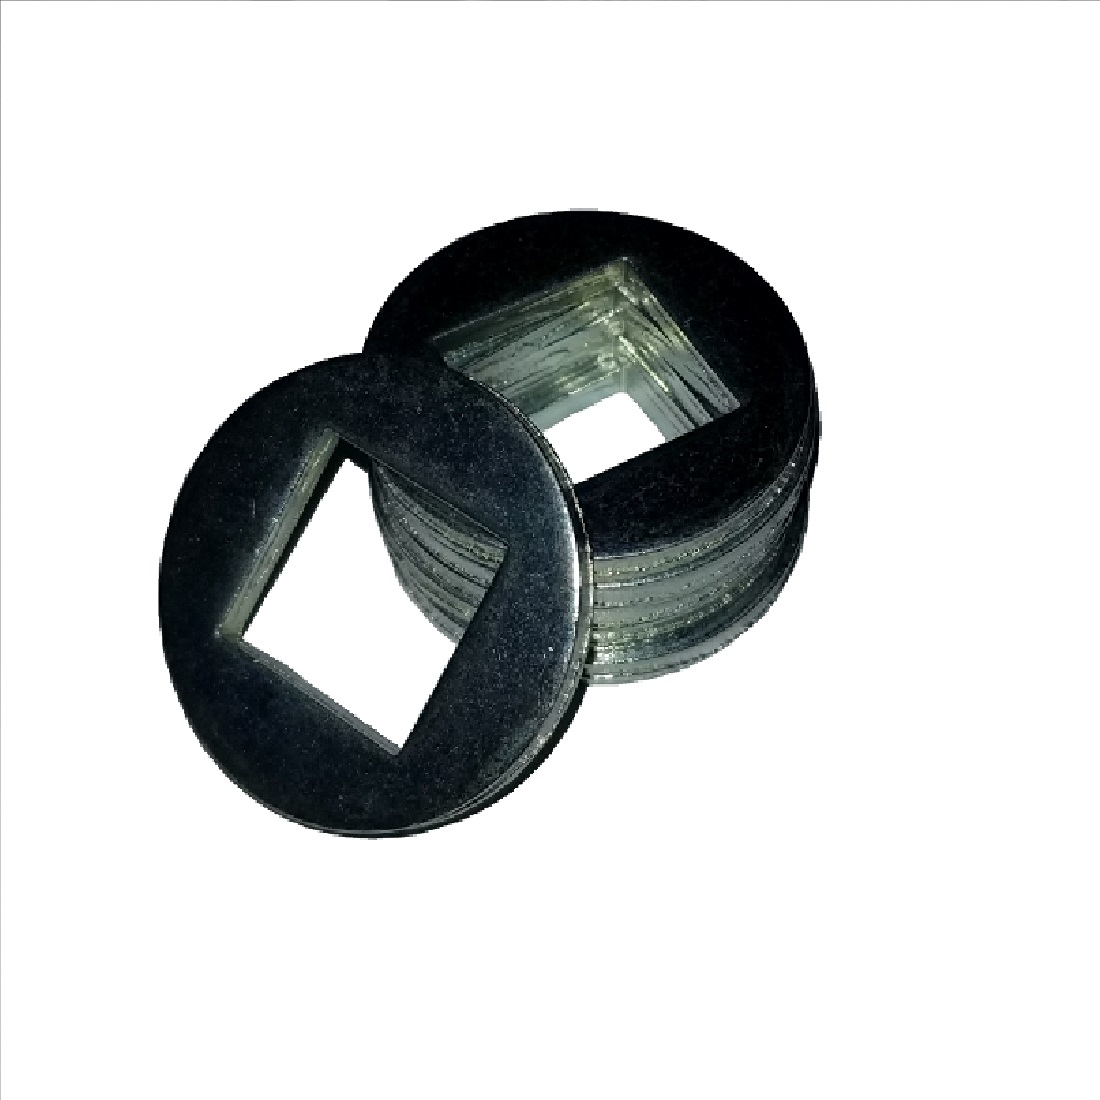 Square ID Washer - 0.656 ID, 1.250 OD, 0.054 Thick, Low Carbon Steel - Soft